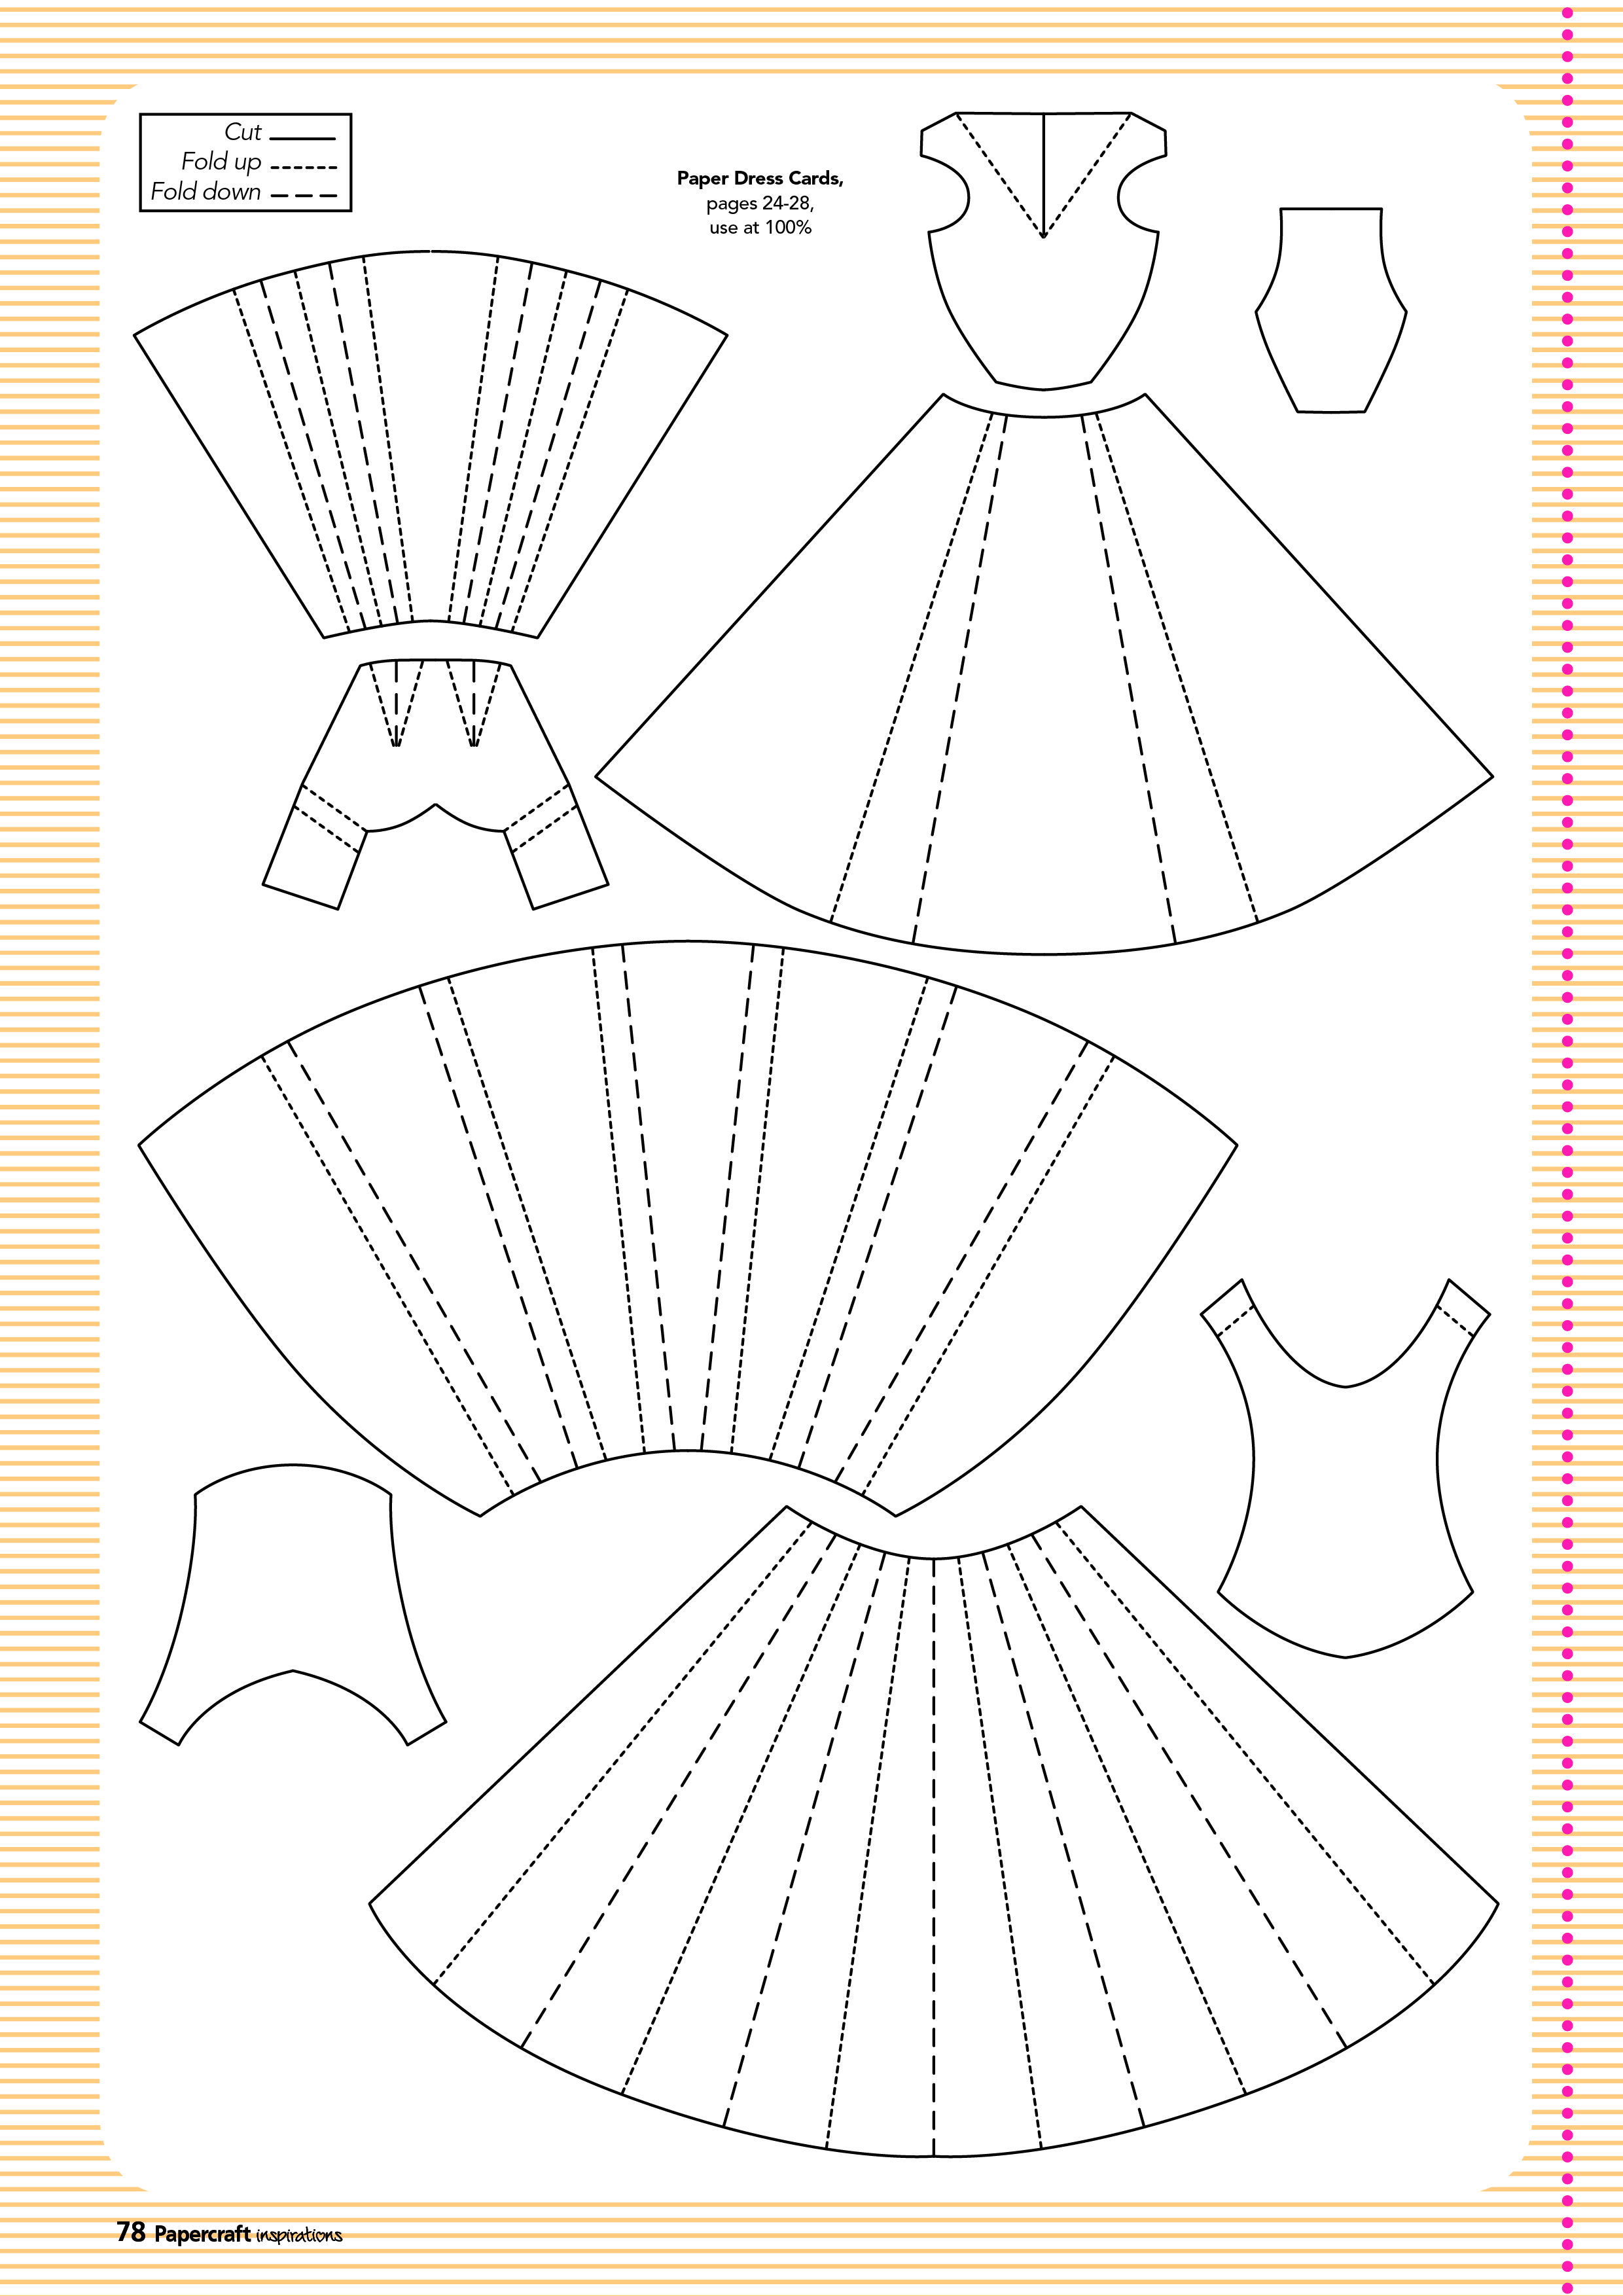 Free Templates From Papercraft Inspirations 129 | Cards-N-Tags - Free Card Making Templates Printable